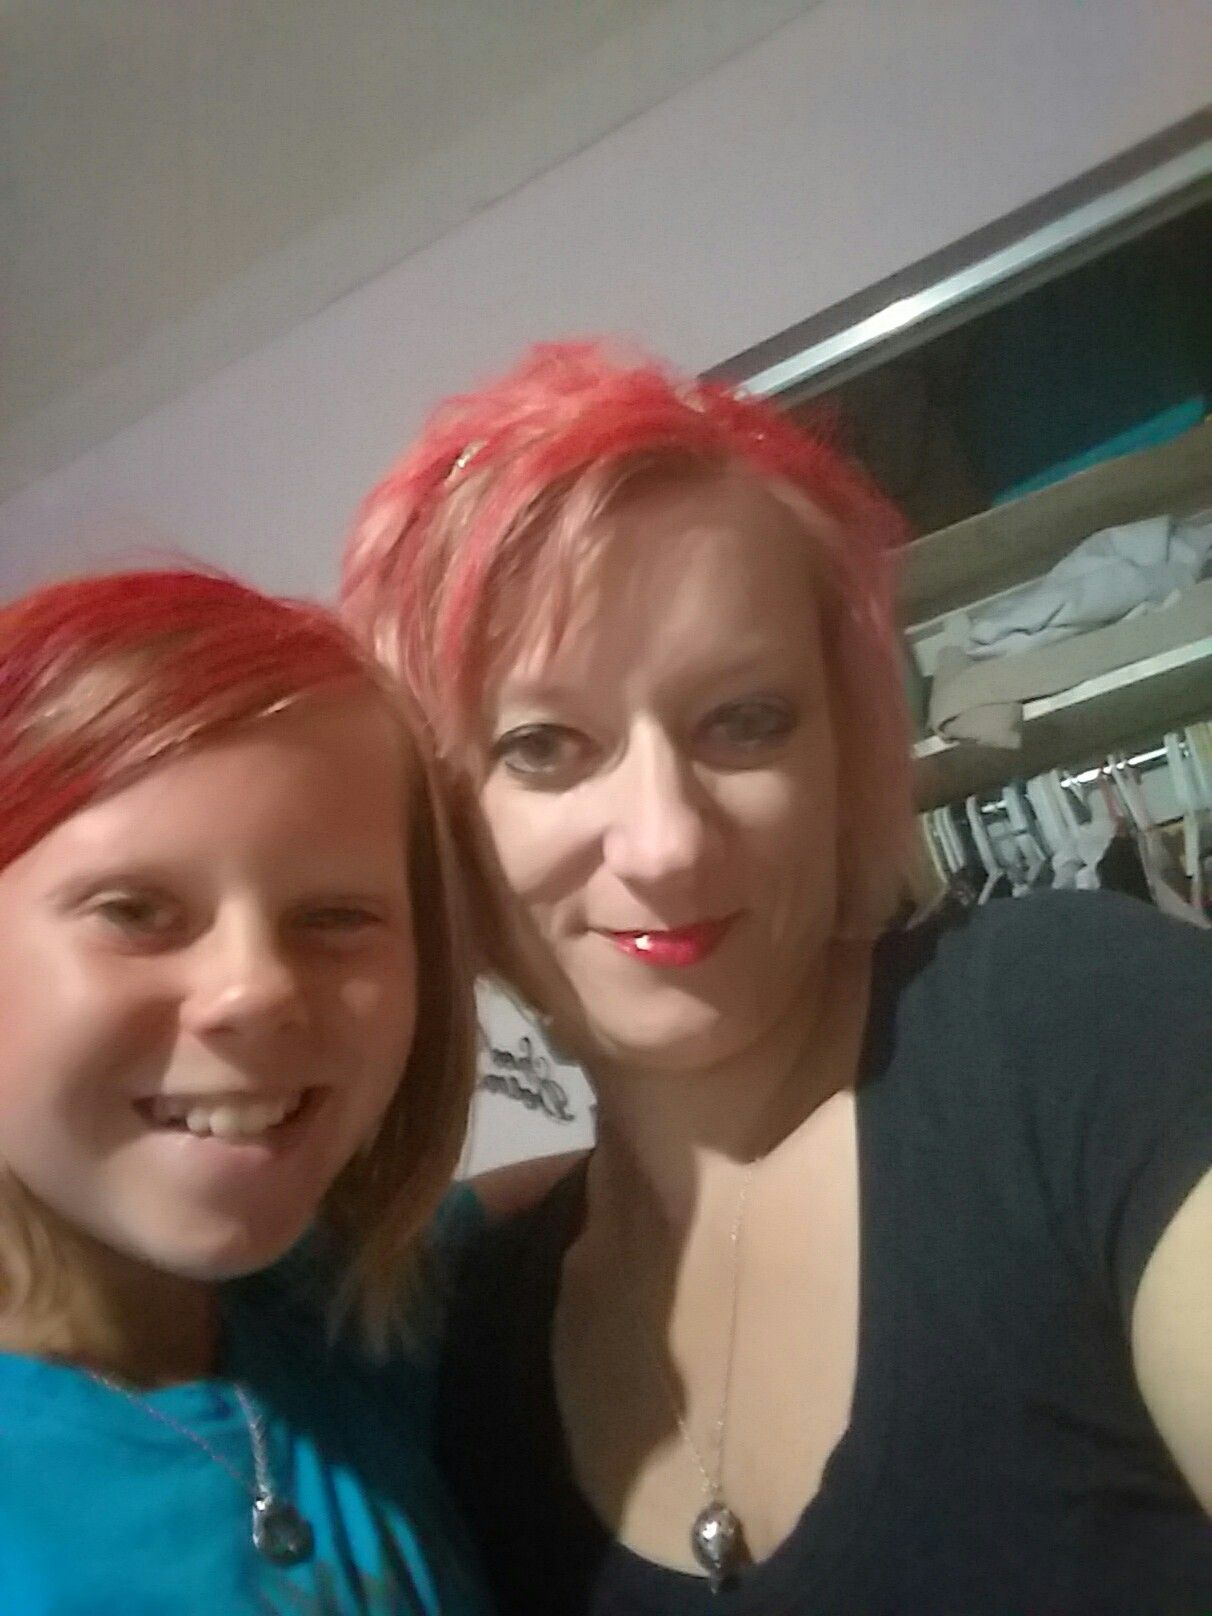 Madi and me when we dyed our hair red 😊 Madi